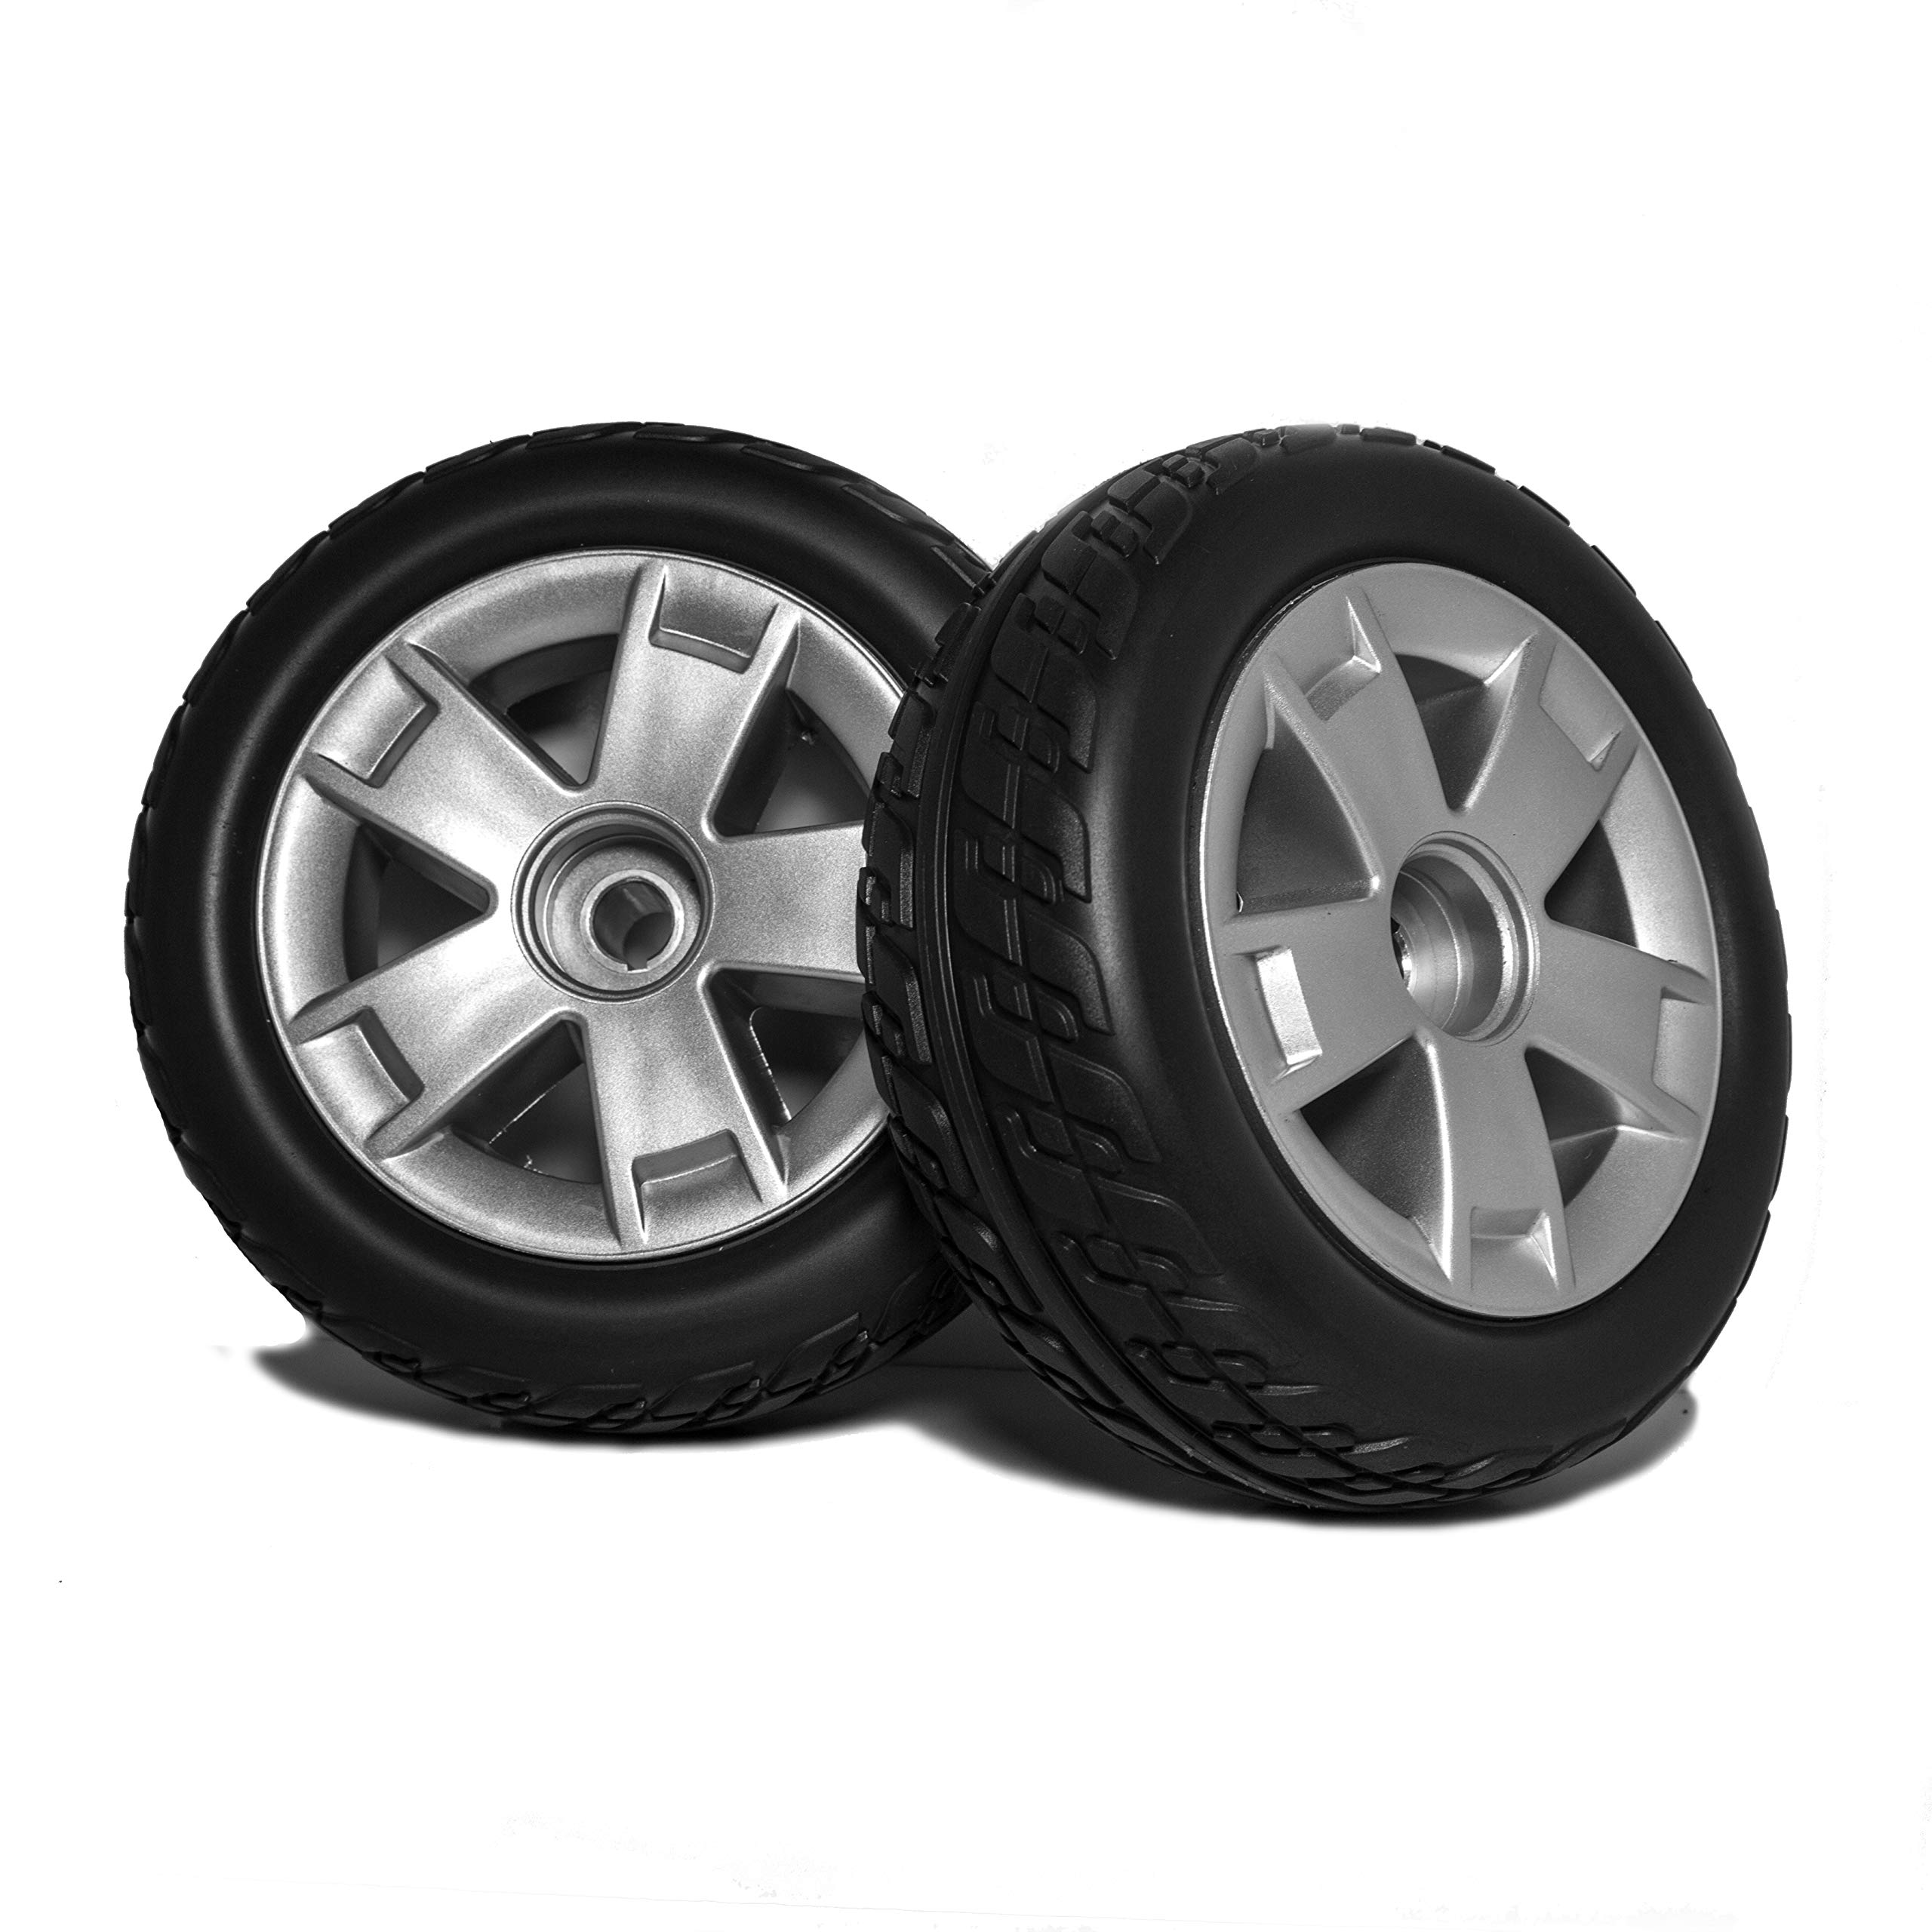 DW835 Pride Victory 9 3 or 4 Wheel Scooter Rear 9'' Wheels and Tire Replacement, (SC609/SC709) Also Victory ES9 and Mega Motion Rascal 9. Black Molded Non-Marking tire ans Silver Rim. Sold in Pairs by New Solutions